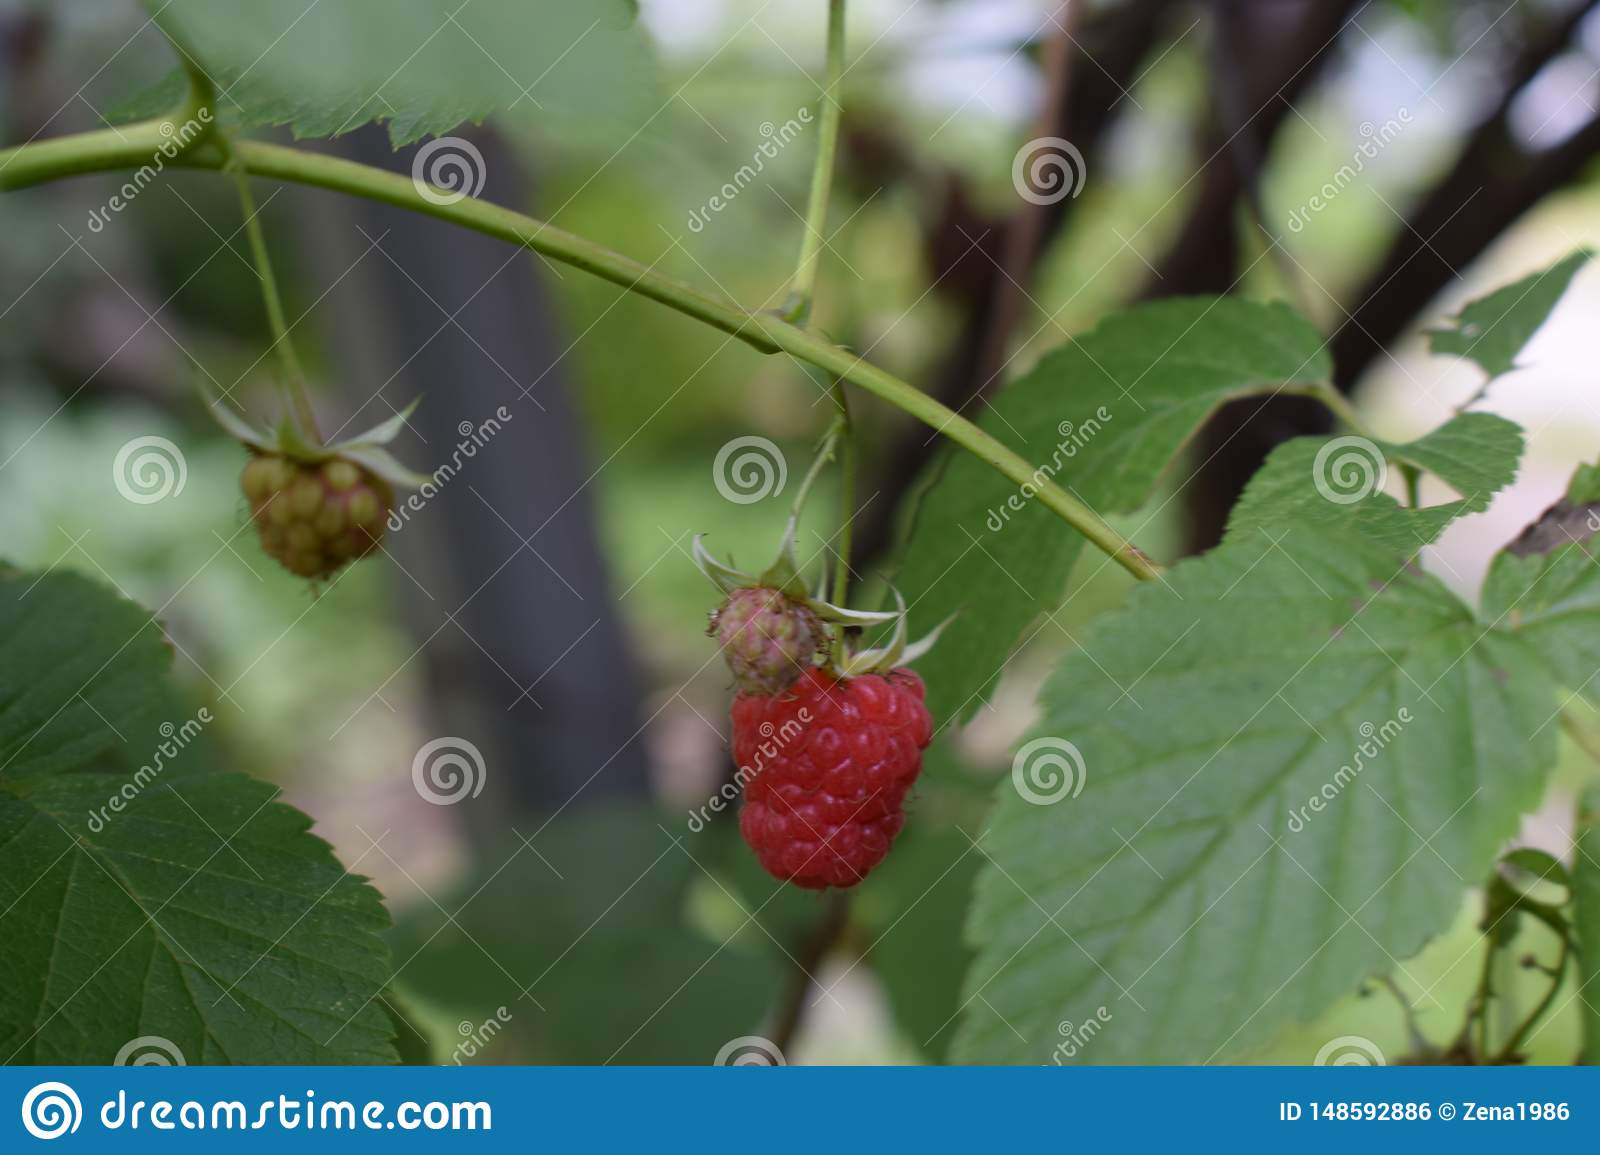 Red raspberry berry on a branch in the garden